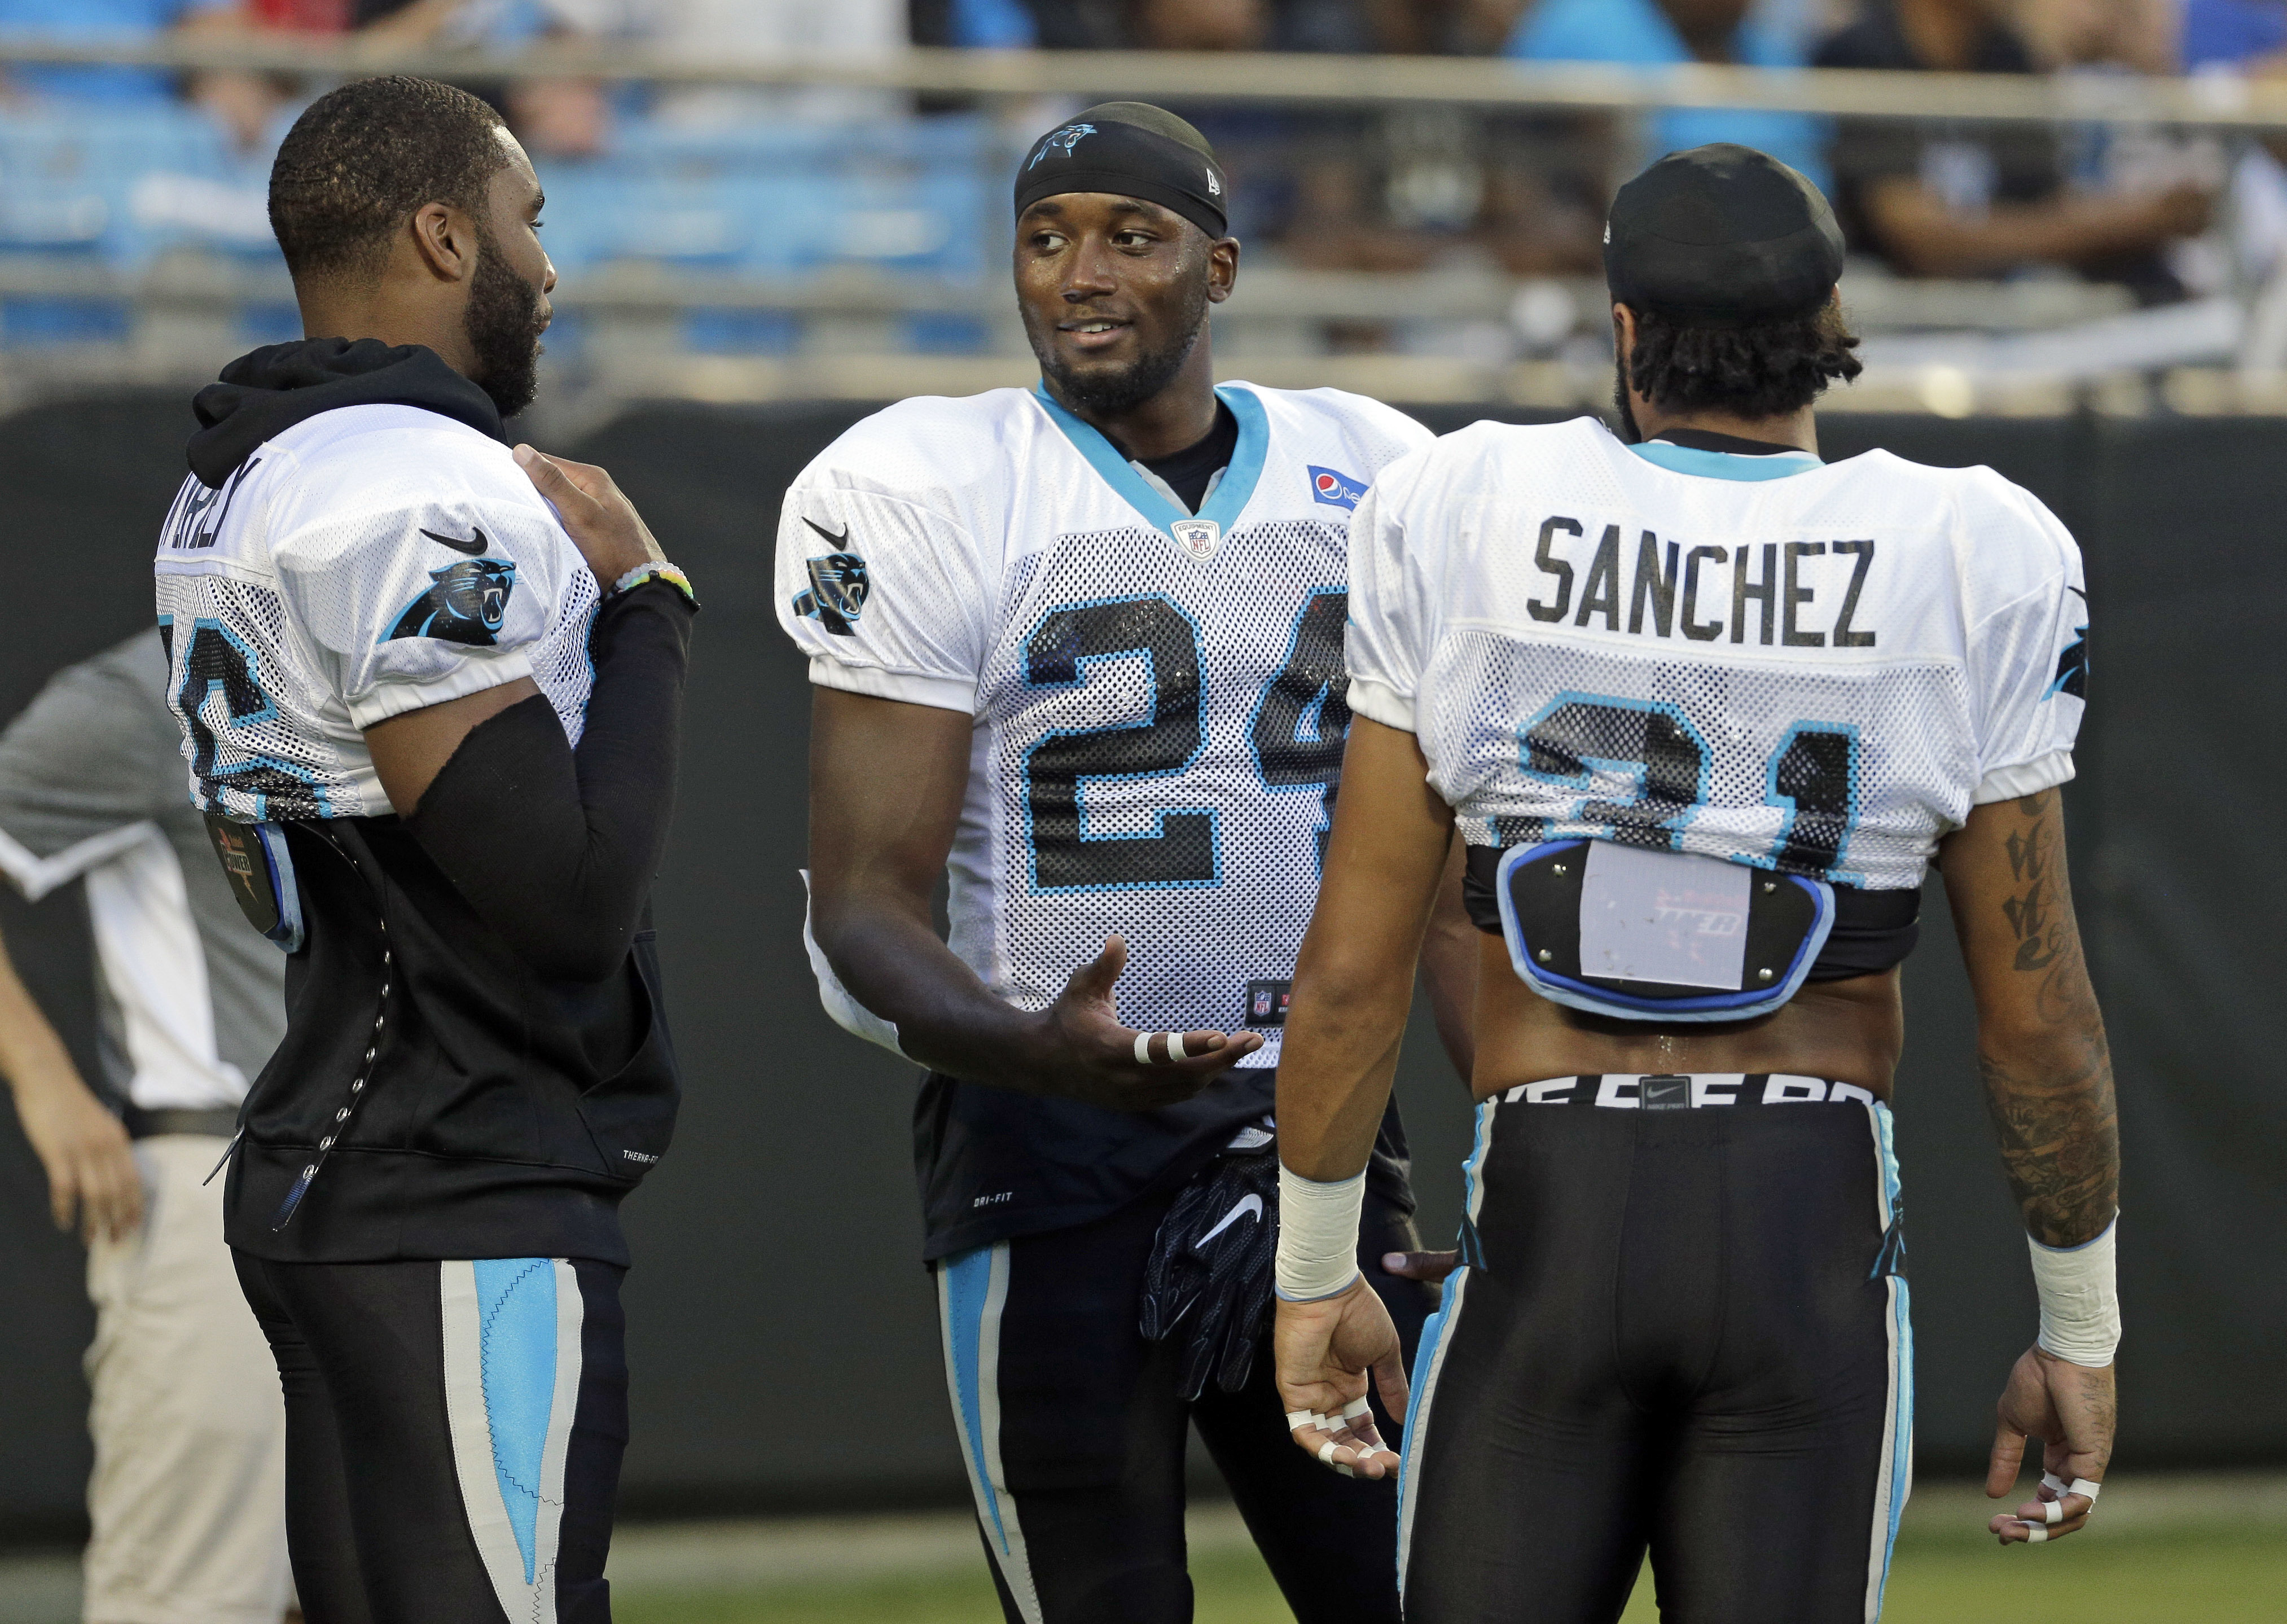 In this photo taken Aug. 5, 2016,  Carolina Panthers' James Bradberry, center, talks with Zack Sanchez, right, and Daryl Worley, left, at their annual Fan Fest practice during NFL training camp in Charlotte, N.C. As the Panthers wrap up training camp at W